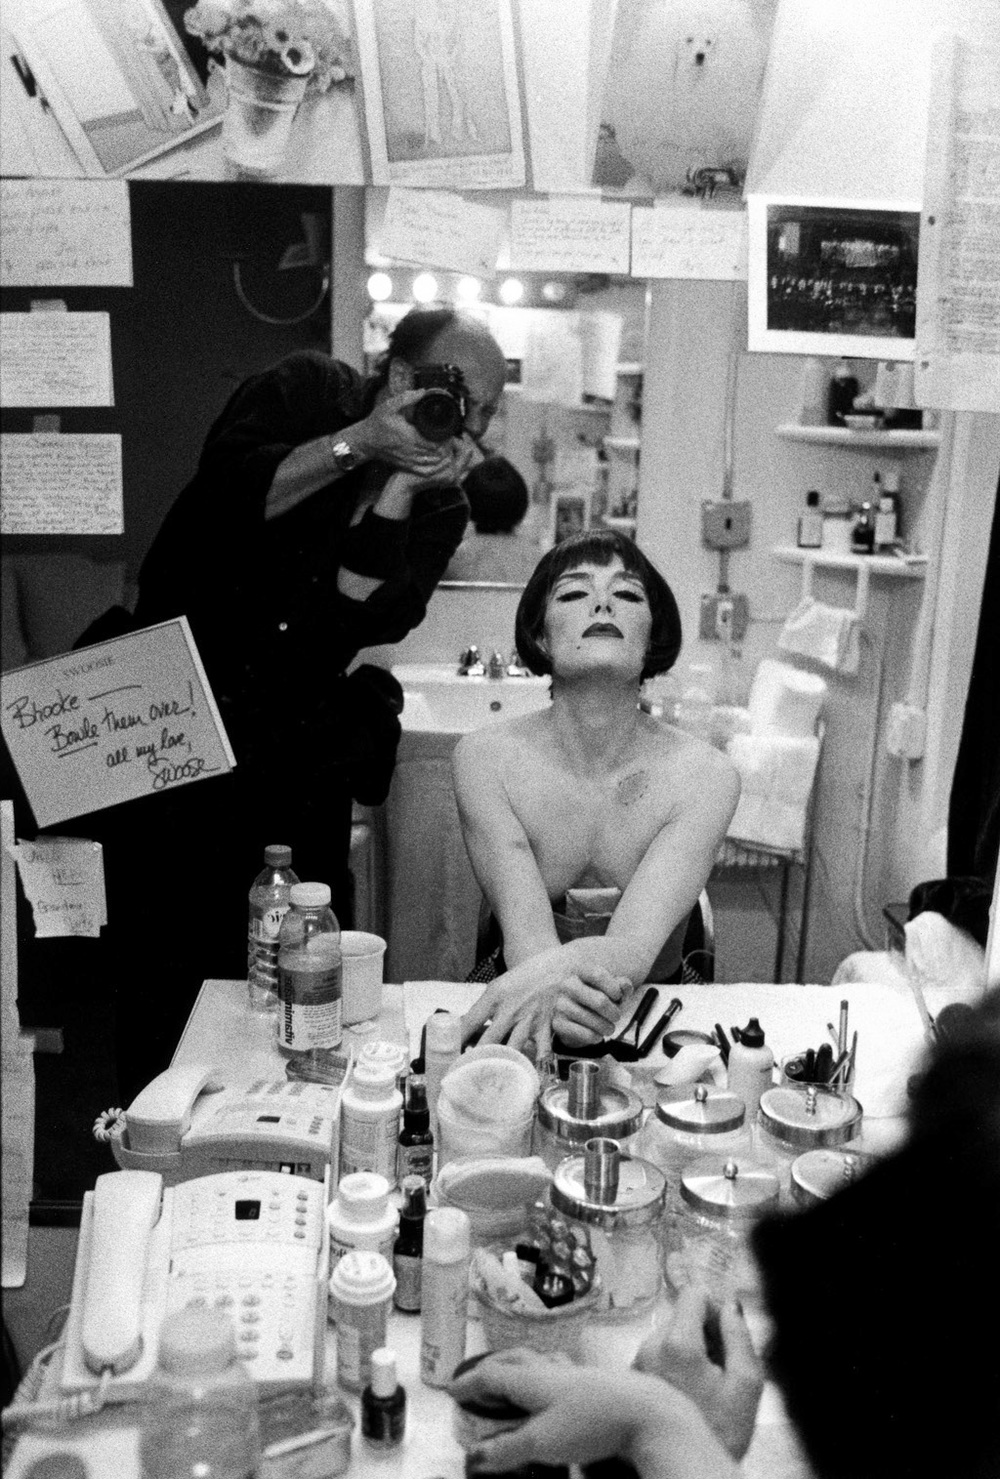 Backstage at Cabaret with Brooke Sheilds